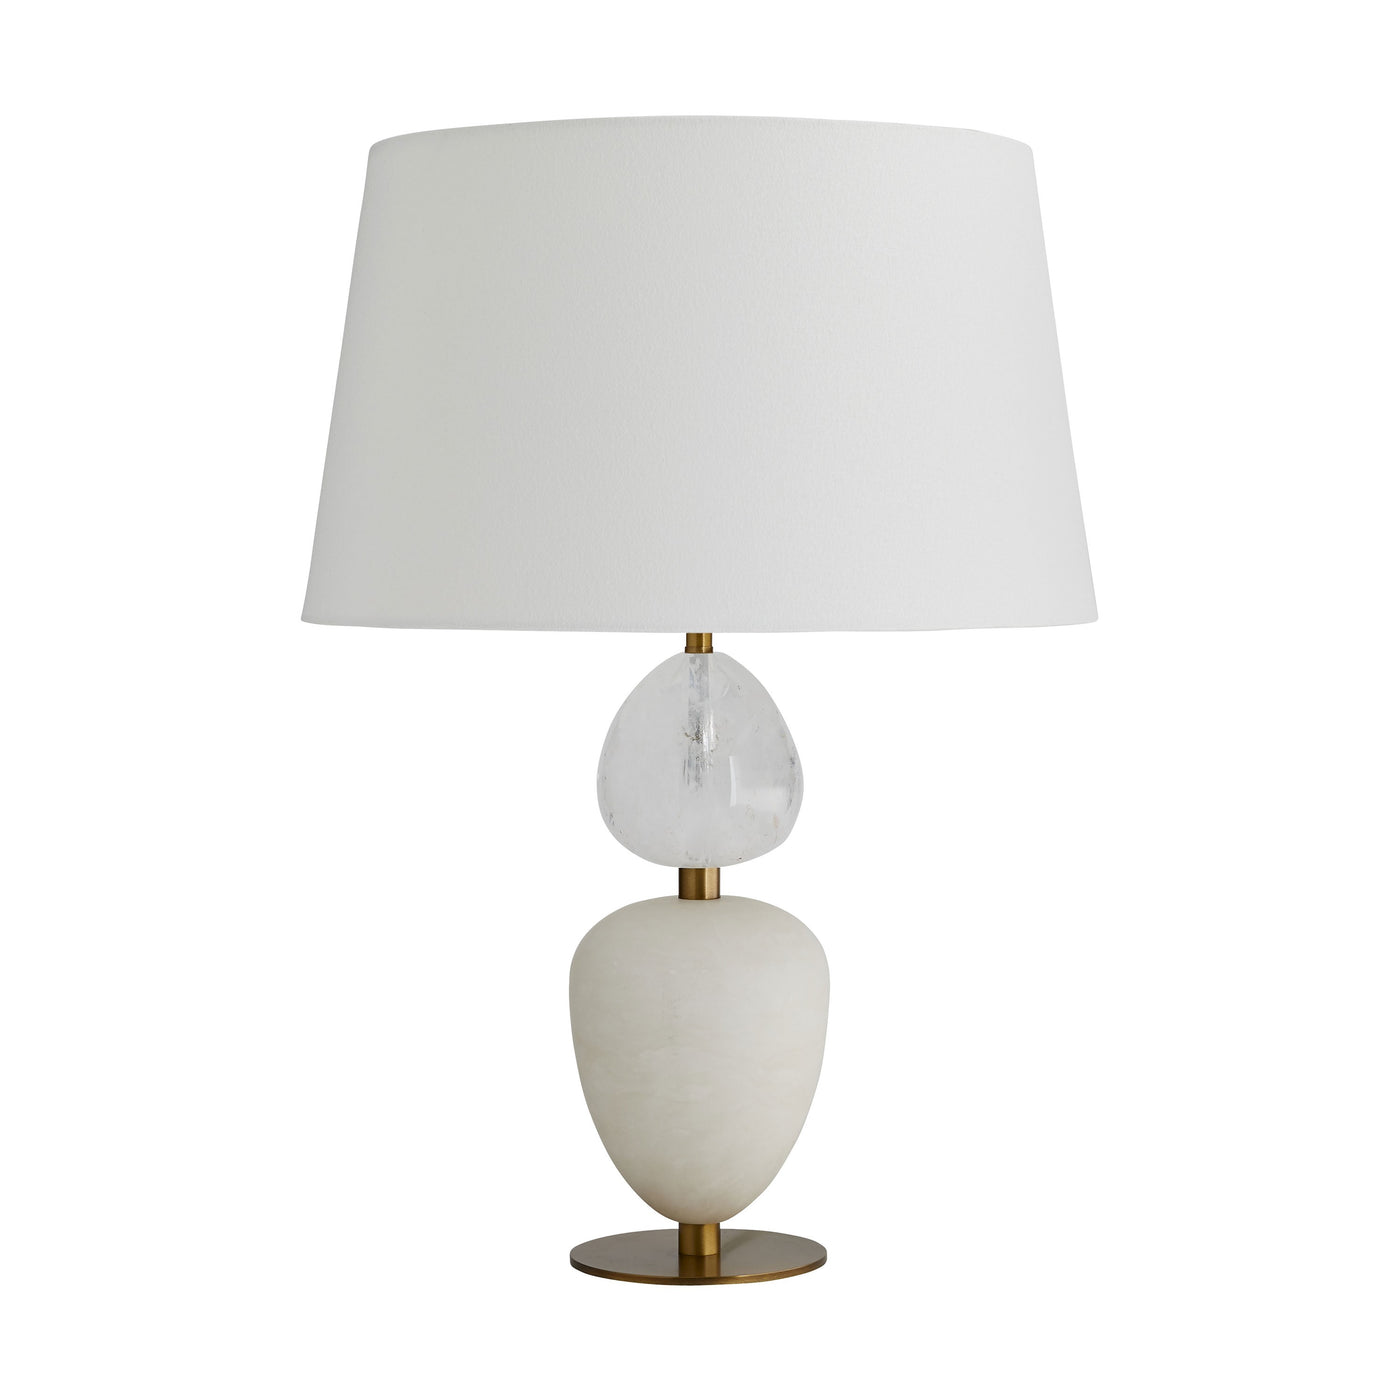 Arteriors-Home-Aubrey-Lamp-full-view